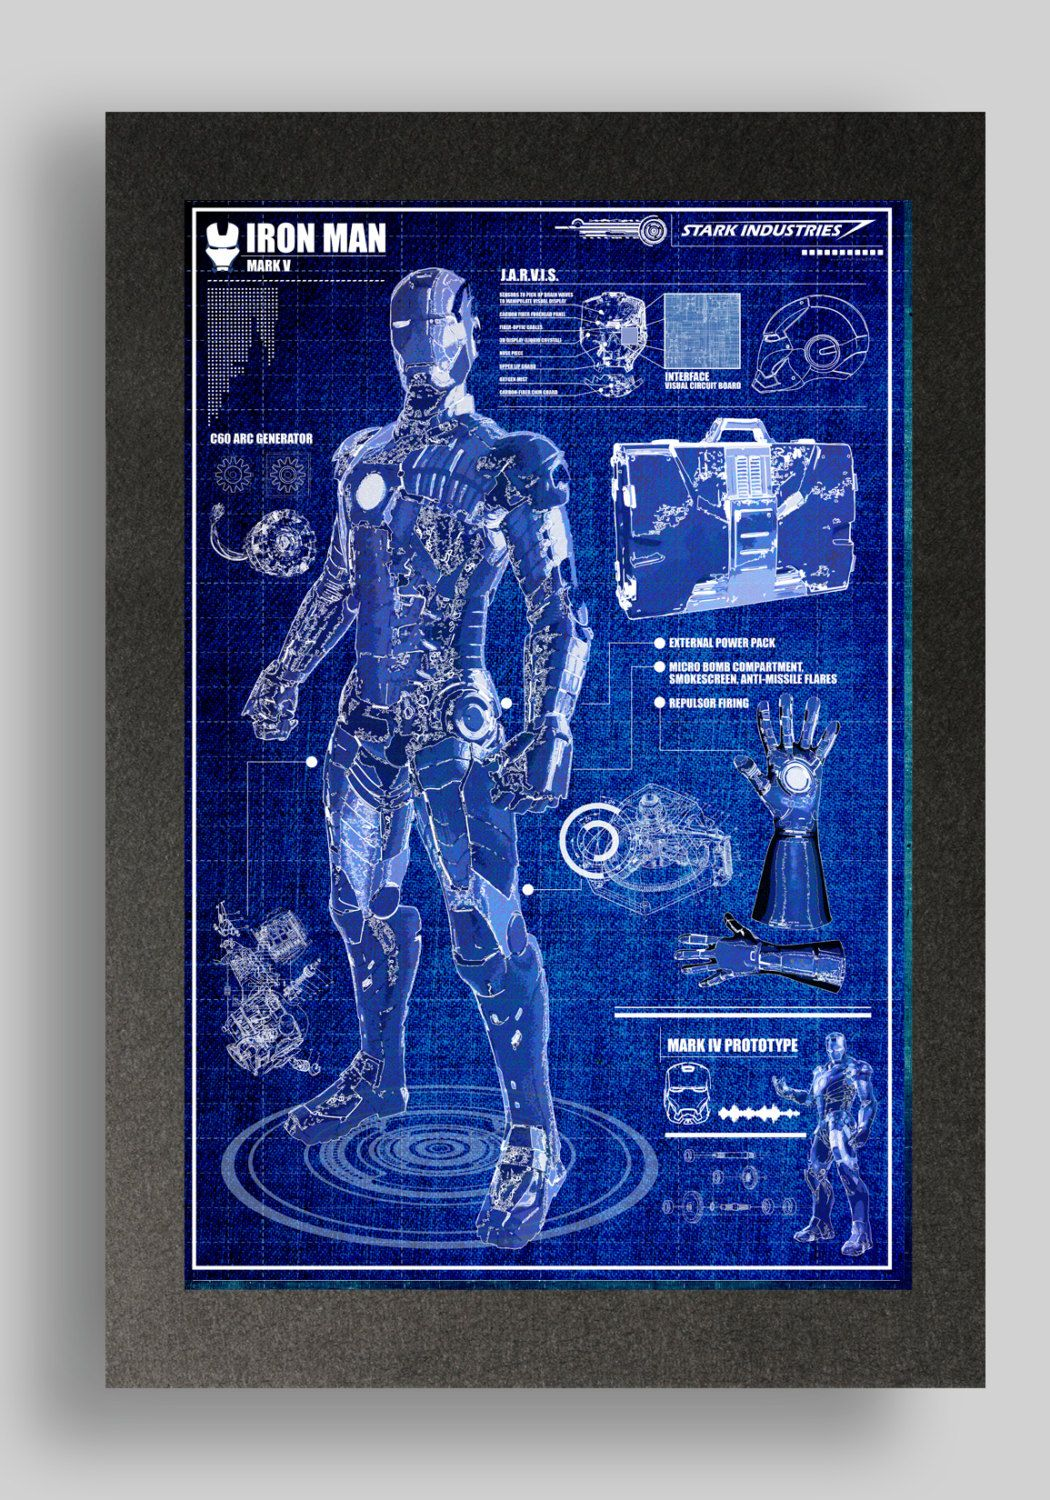 Iron man mark 5 suit blueprints 16x24 by ryanhuddle on etsy iron iron man mark 5 suit blueprints 16x24 by ryanhuddle on etsy malvernweather Images